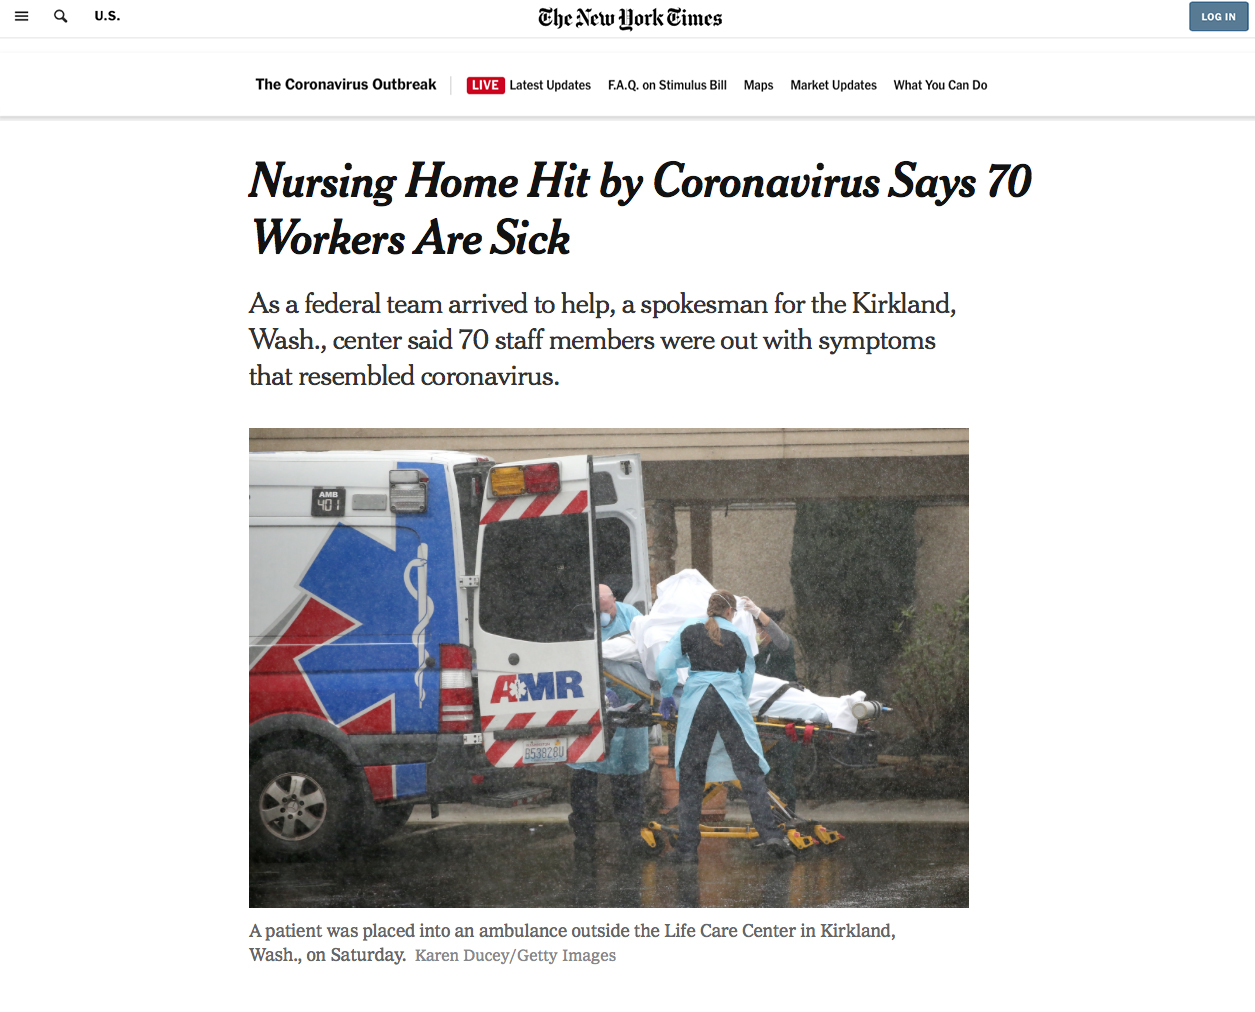 {quote}Nursing Home Hit by Coronavirus Says 70 Workers Are Sick{quote}, Photo for Getty Images, published in The New York Times, March 7, 2020.